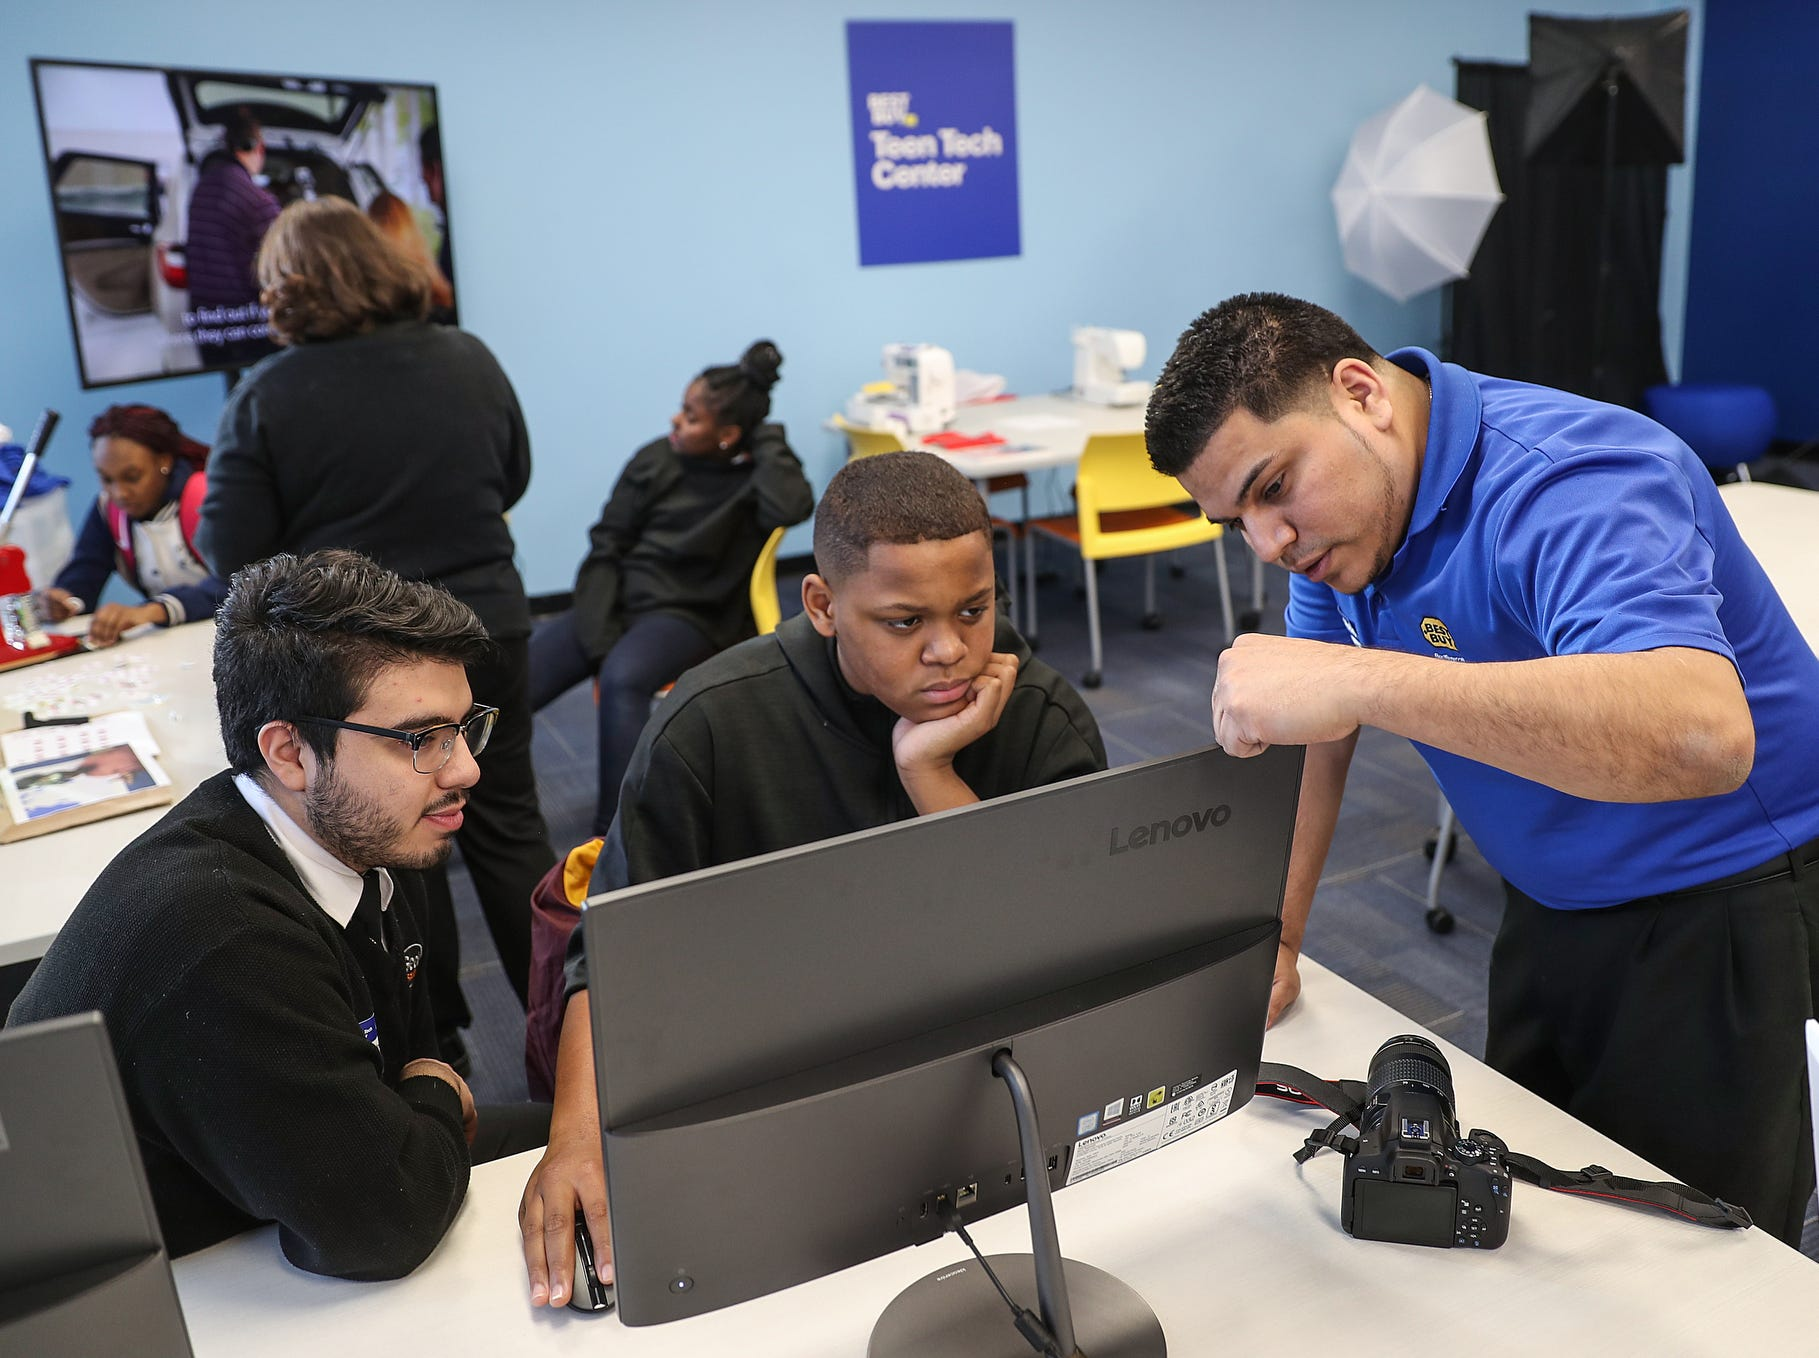 Carlos Bucio, left, and Yass Fernandez, right, teach photoshop skills to Damon Lee, 13, during the opening of the Best Buy Teen Tech Center at the MLK Community Center in Indianapolis, Tuesday, Jan. 29, 2019.